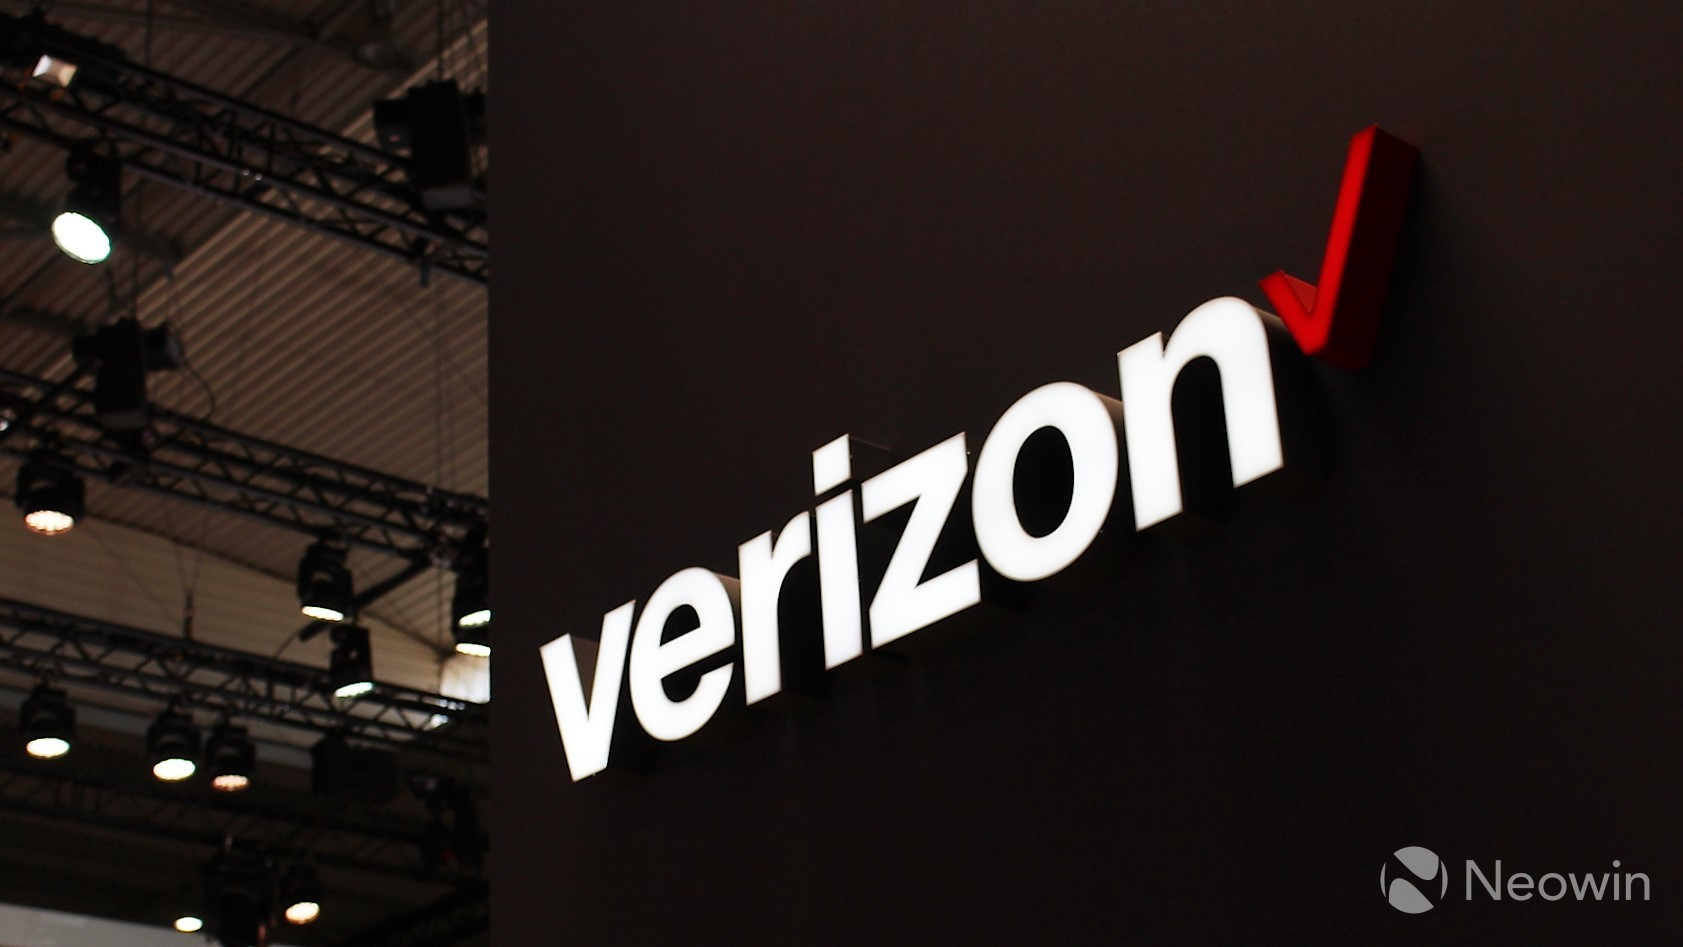 Verizon fire phone snag cited by net neutrality bill backers